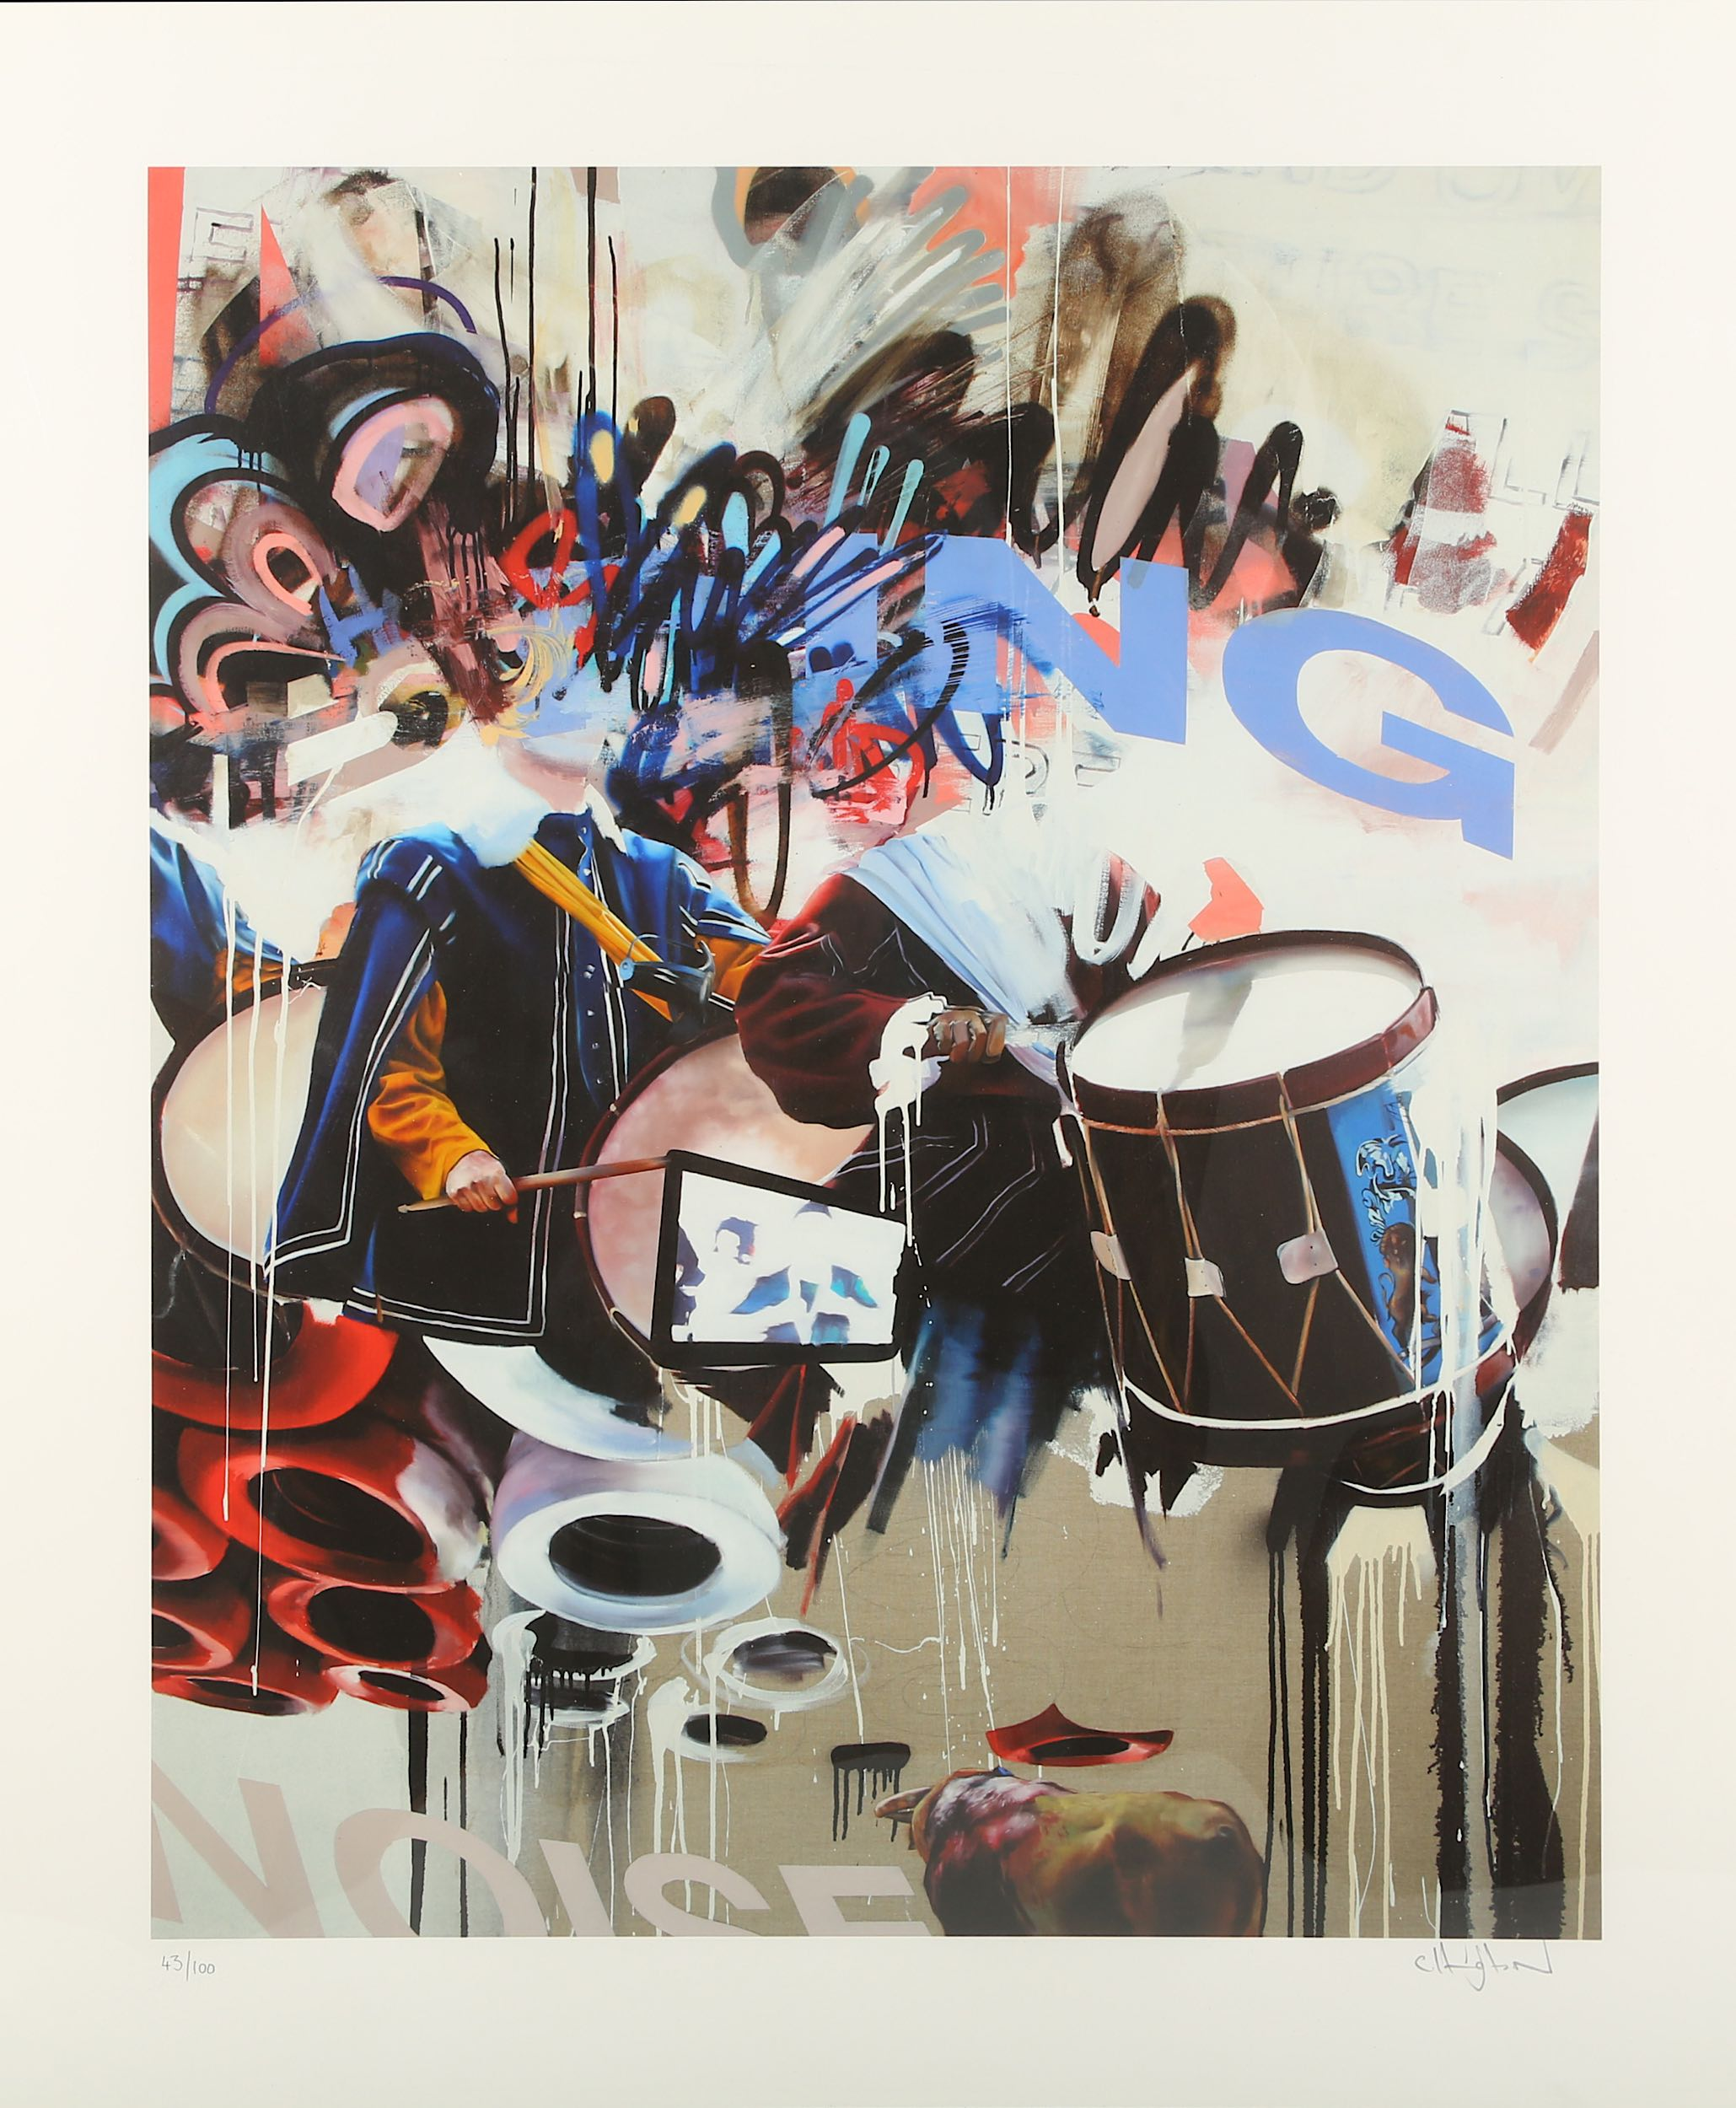 Lot 343 - Conor Harrington (British b.1980), 'Bring The Noise', 2010